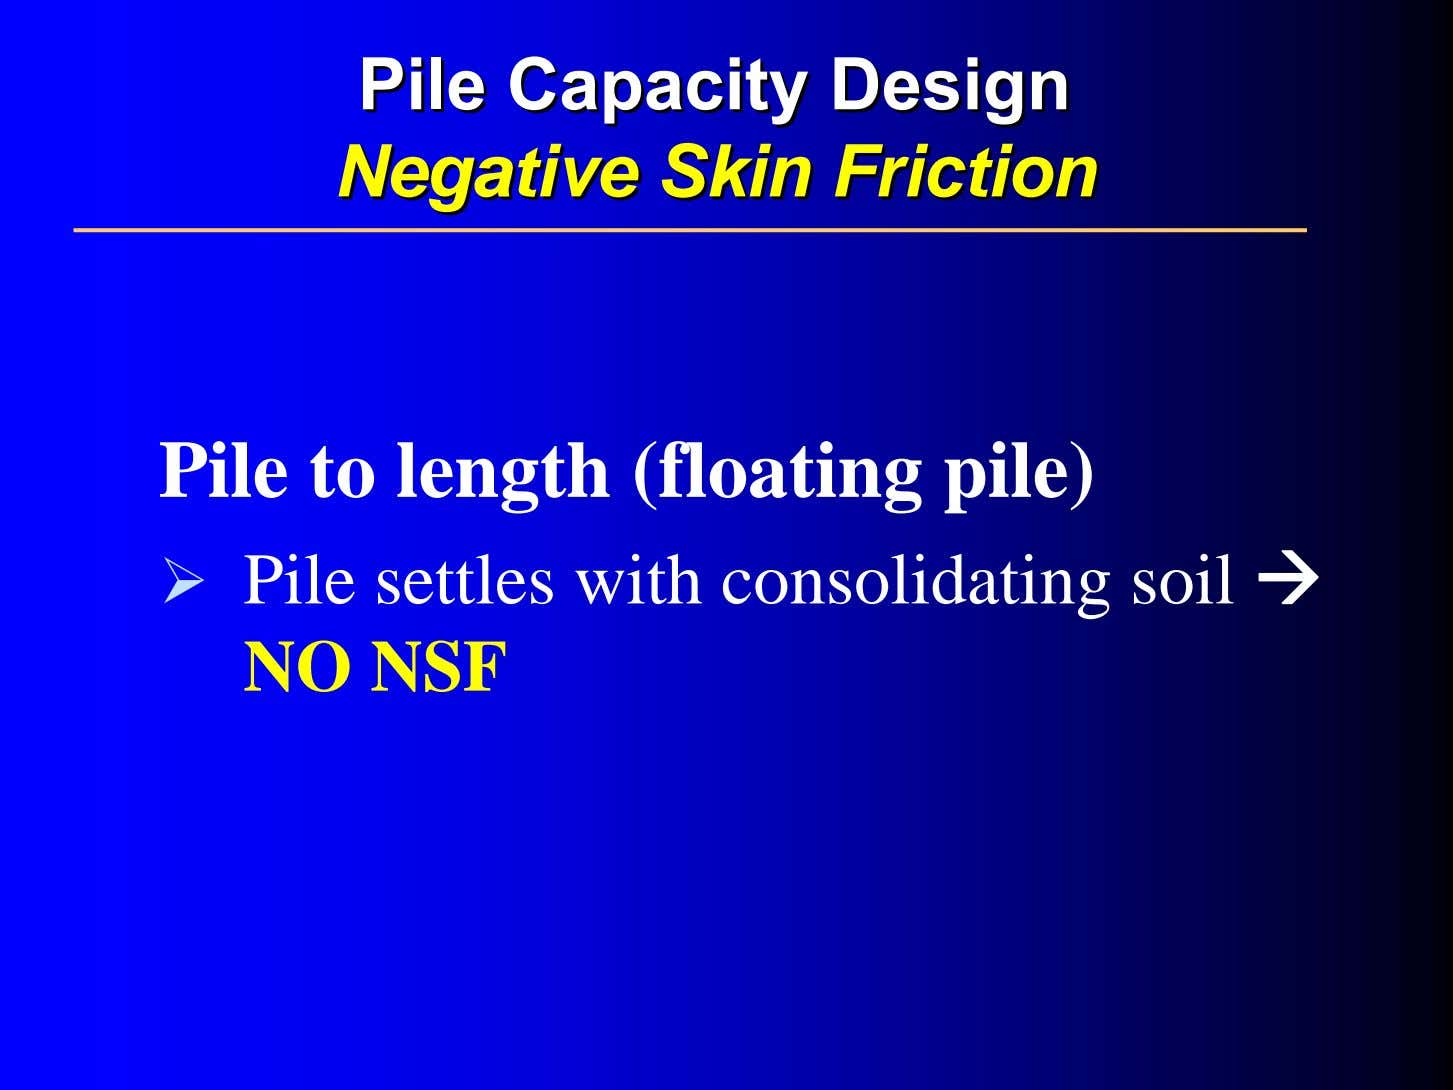 PilePile CapacityCapacity DesignDesign NegativeNegative SkinSkin FrictionFriction Pile to length (floating pile) Pile